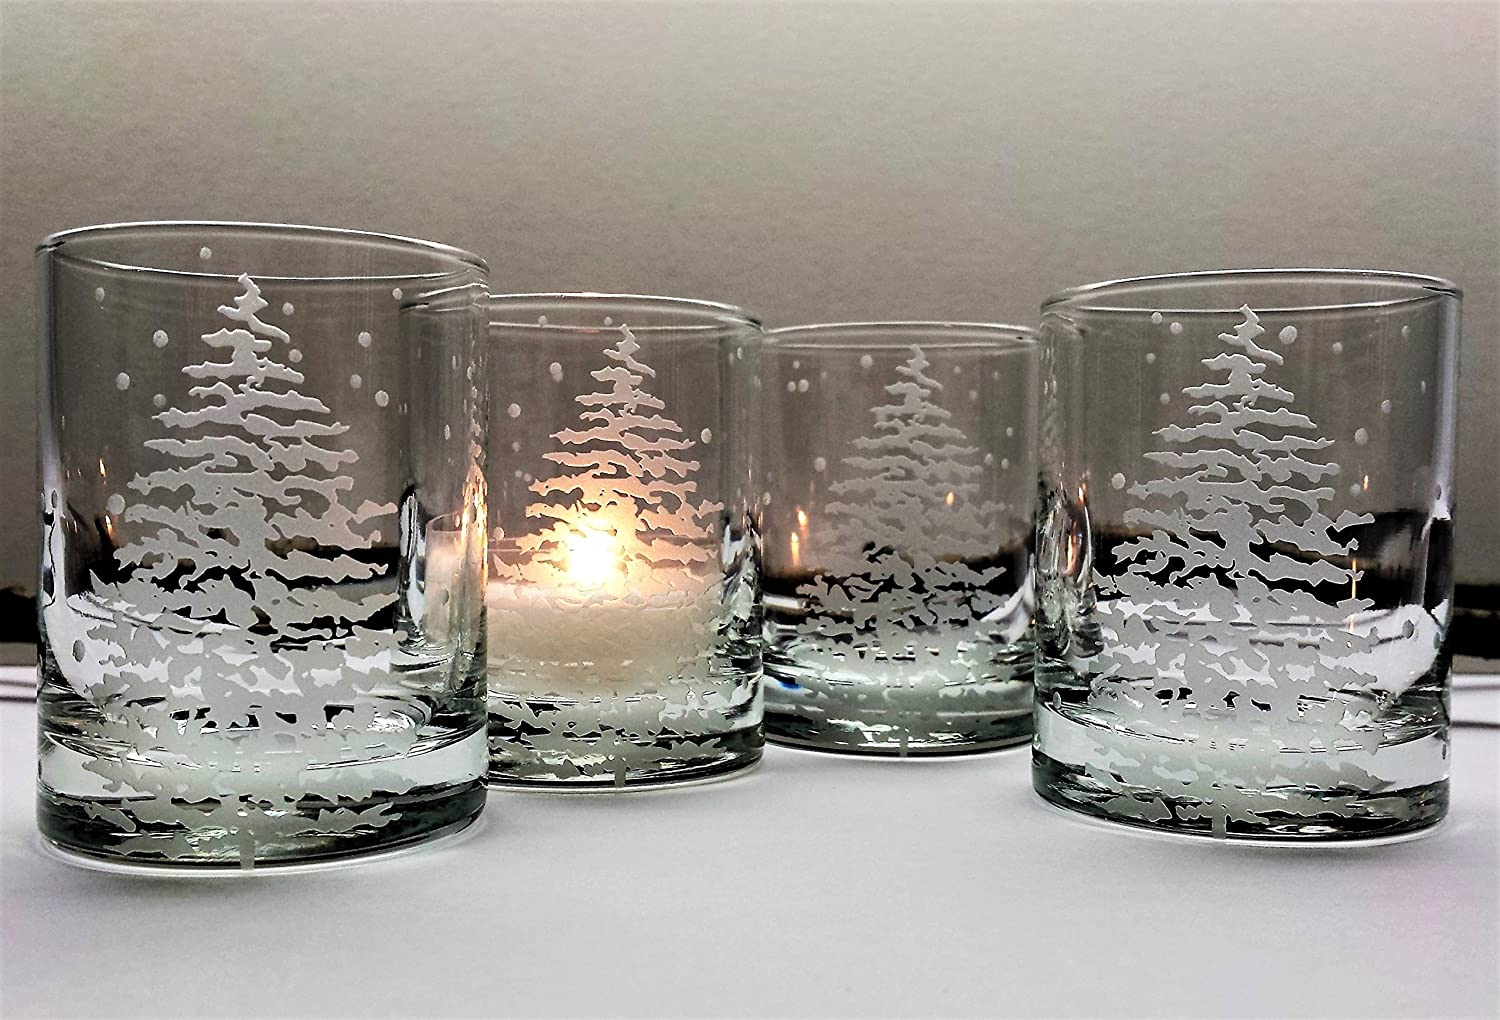 Fir Tree and Floating Snowflakes Winter Decor Votive Candle Holders Set of 4